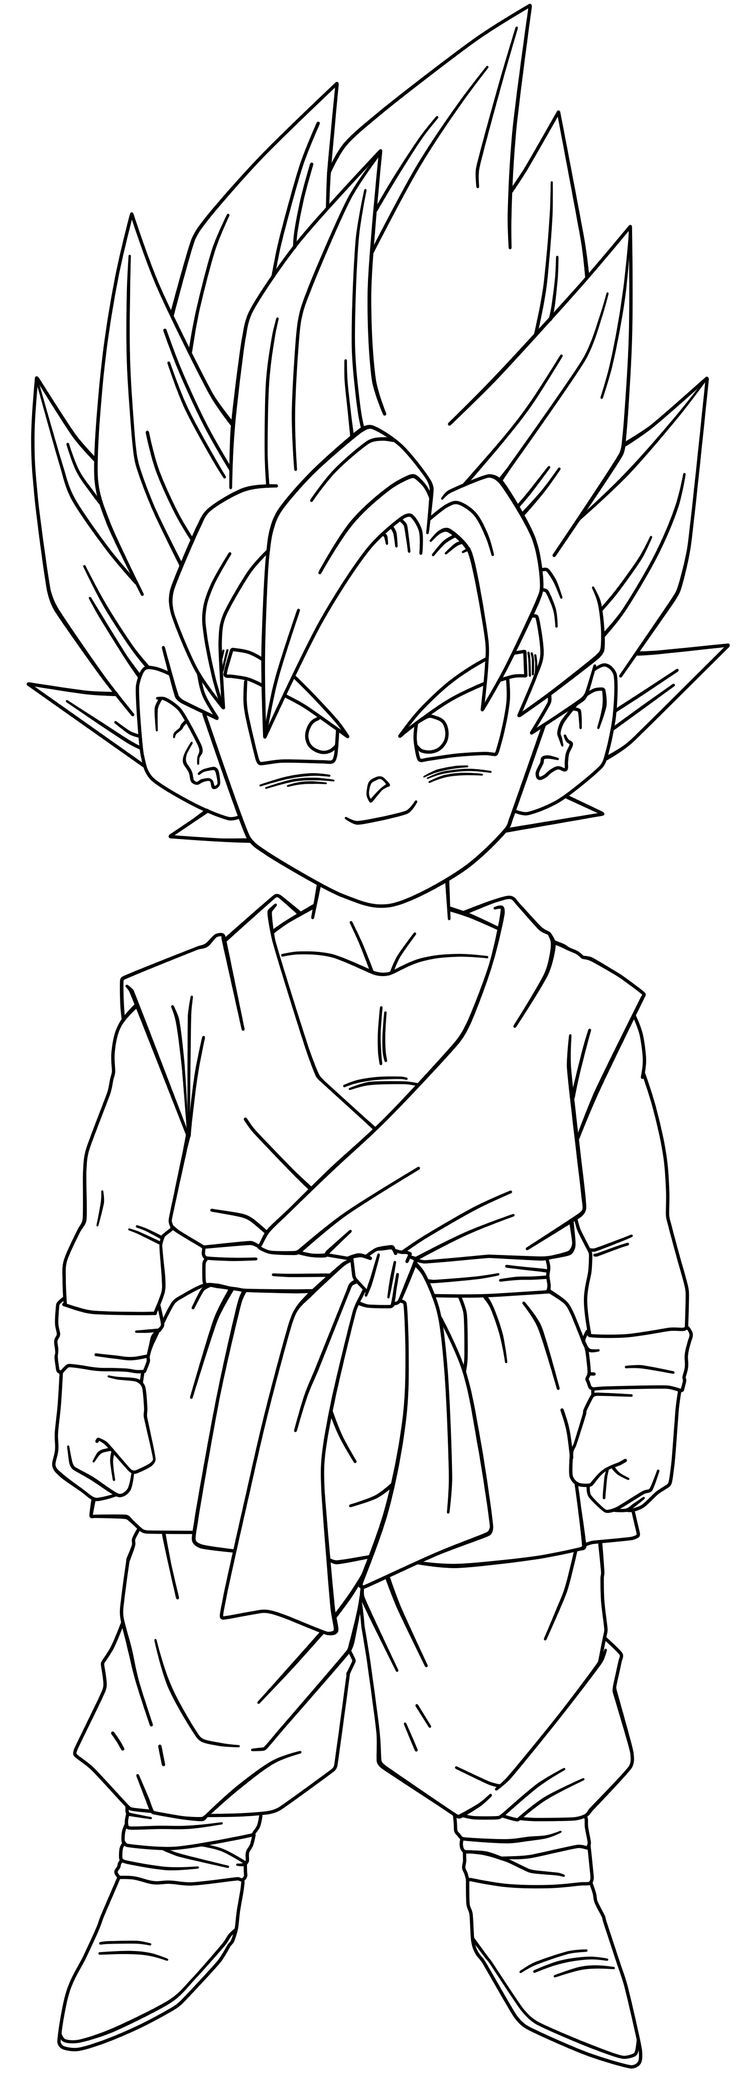 dragon ball gt coloring pages dragon ball gt coloring pages coloring home coloring ball dragon pages gt